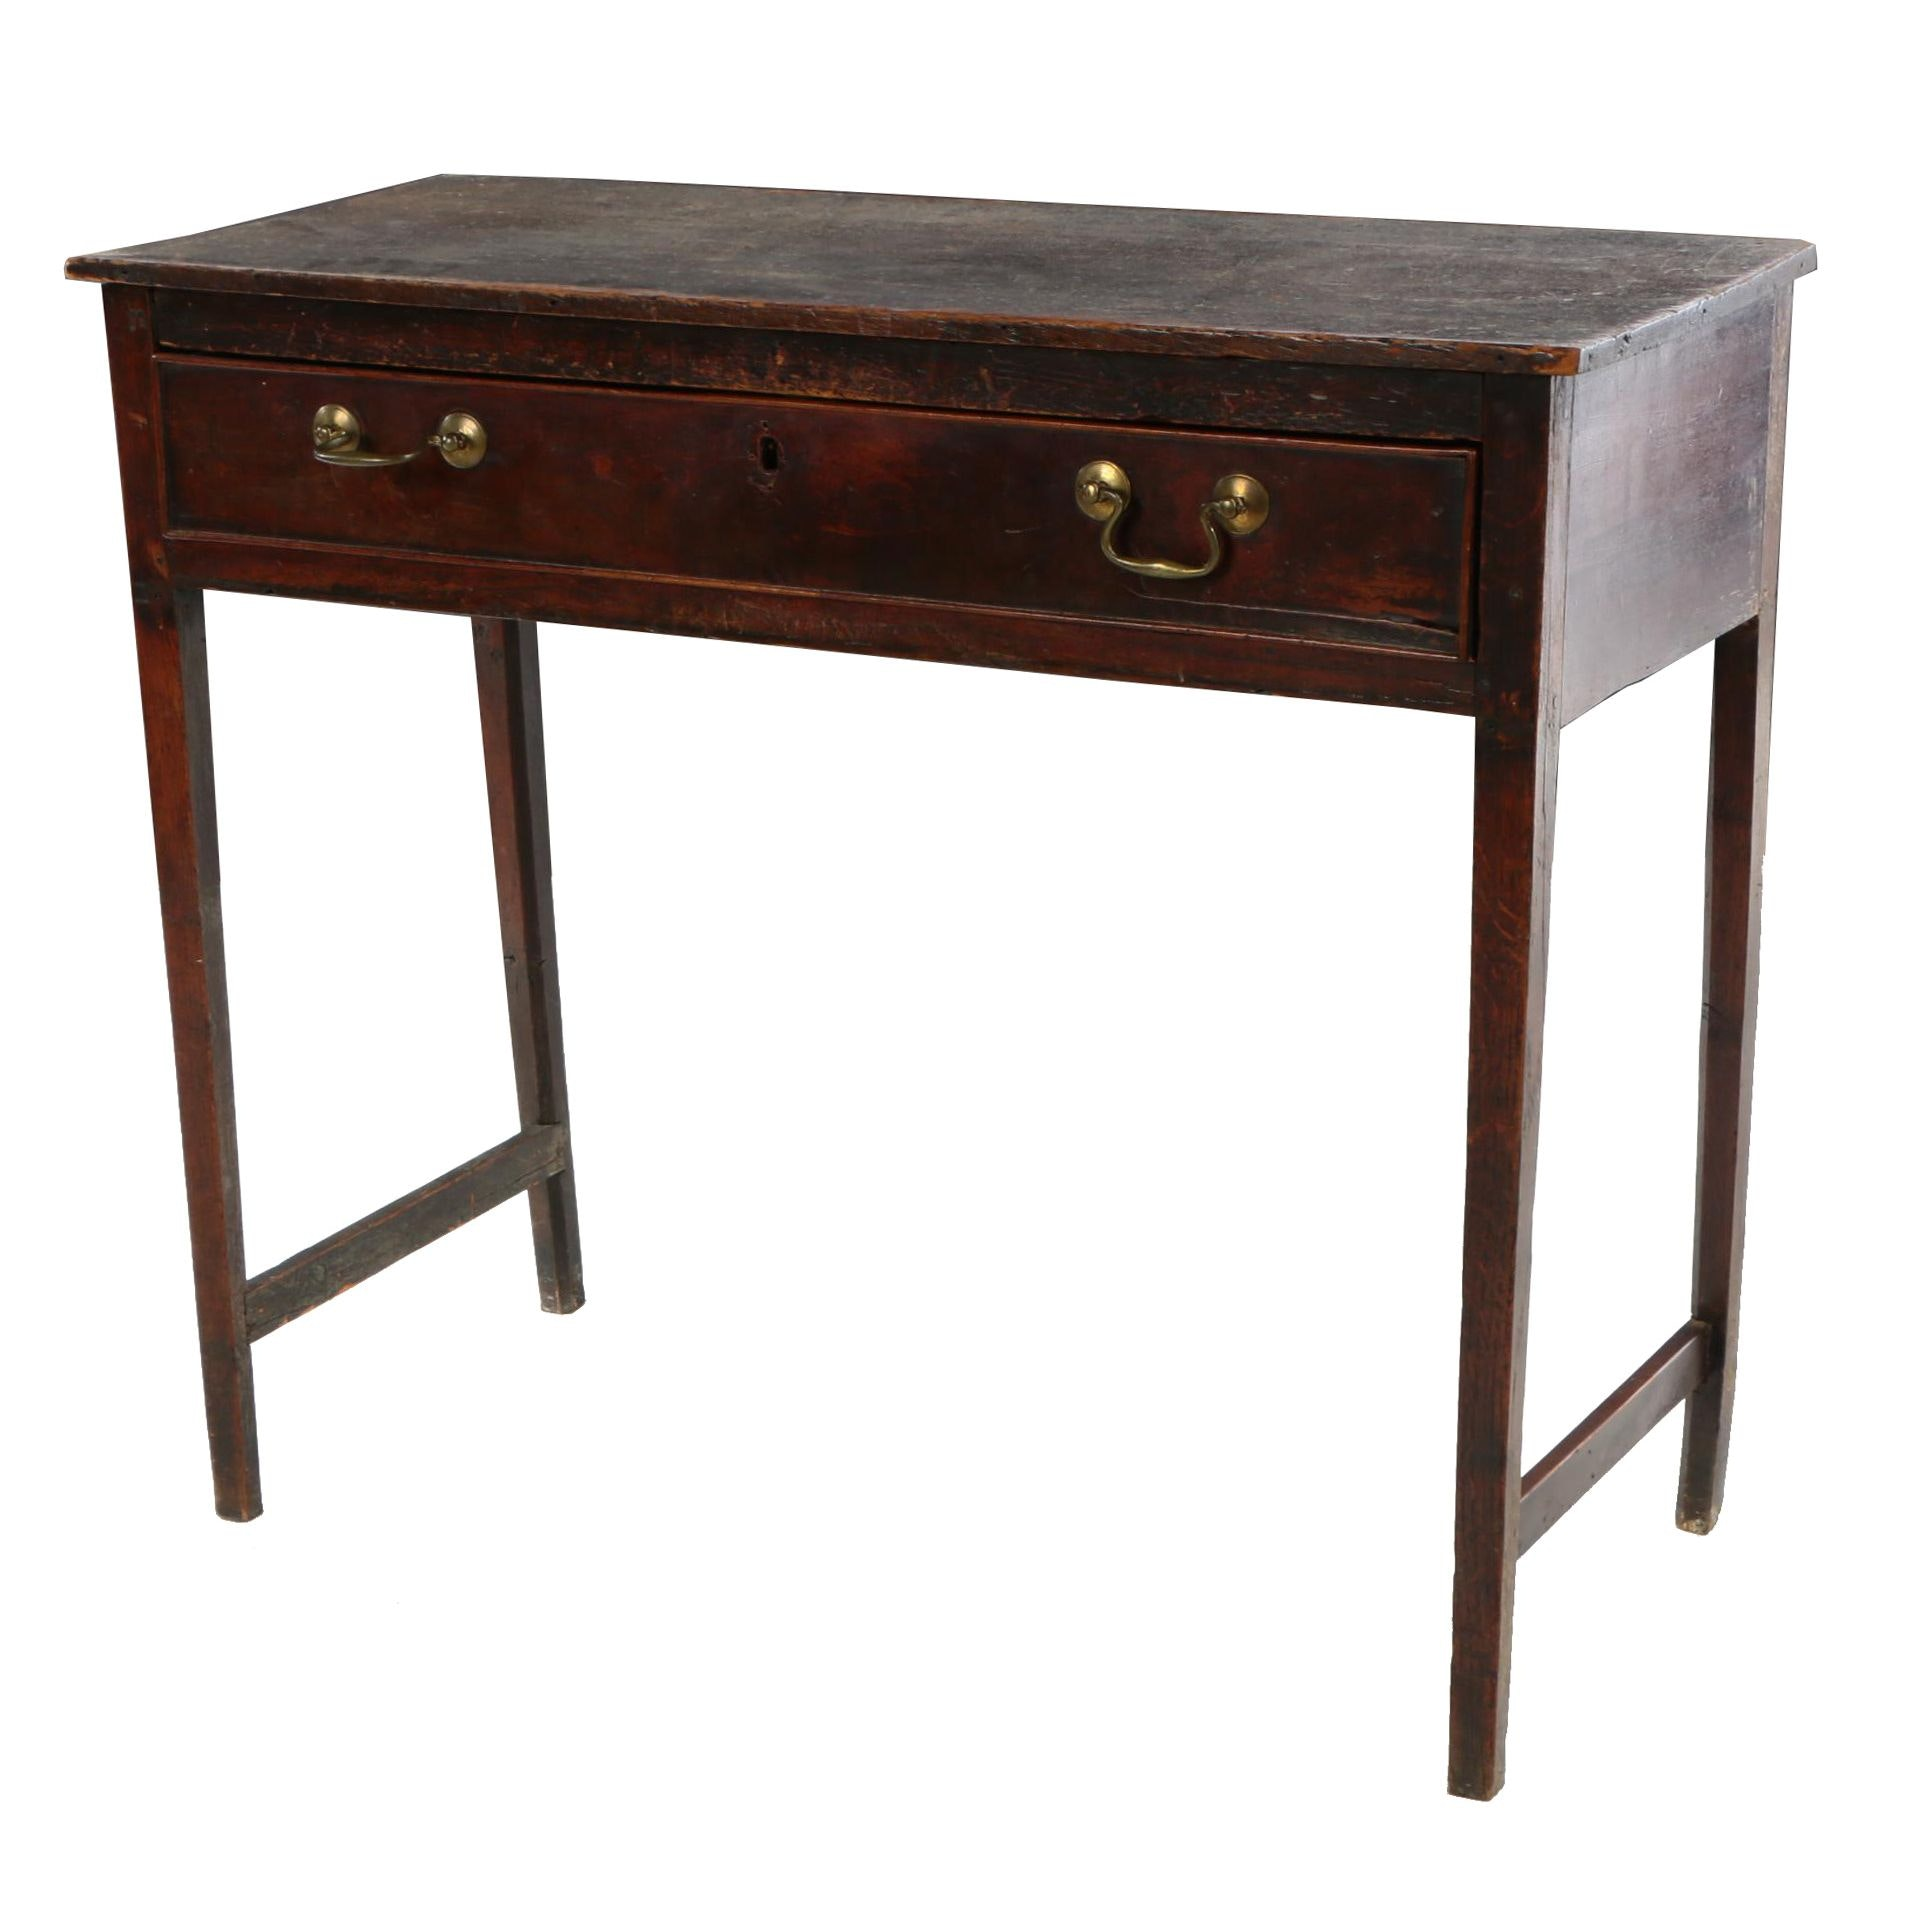 English Mahogany and Oak Side Table, 19th Century